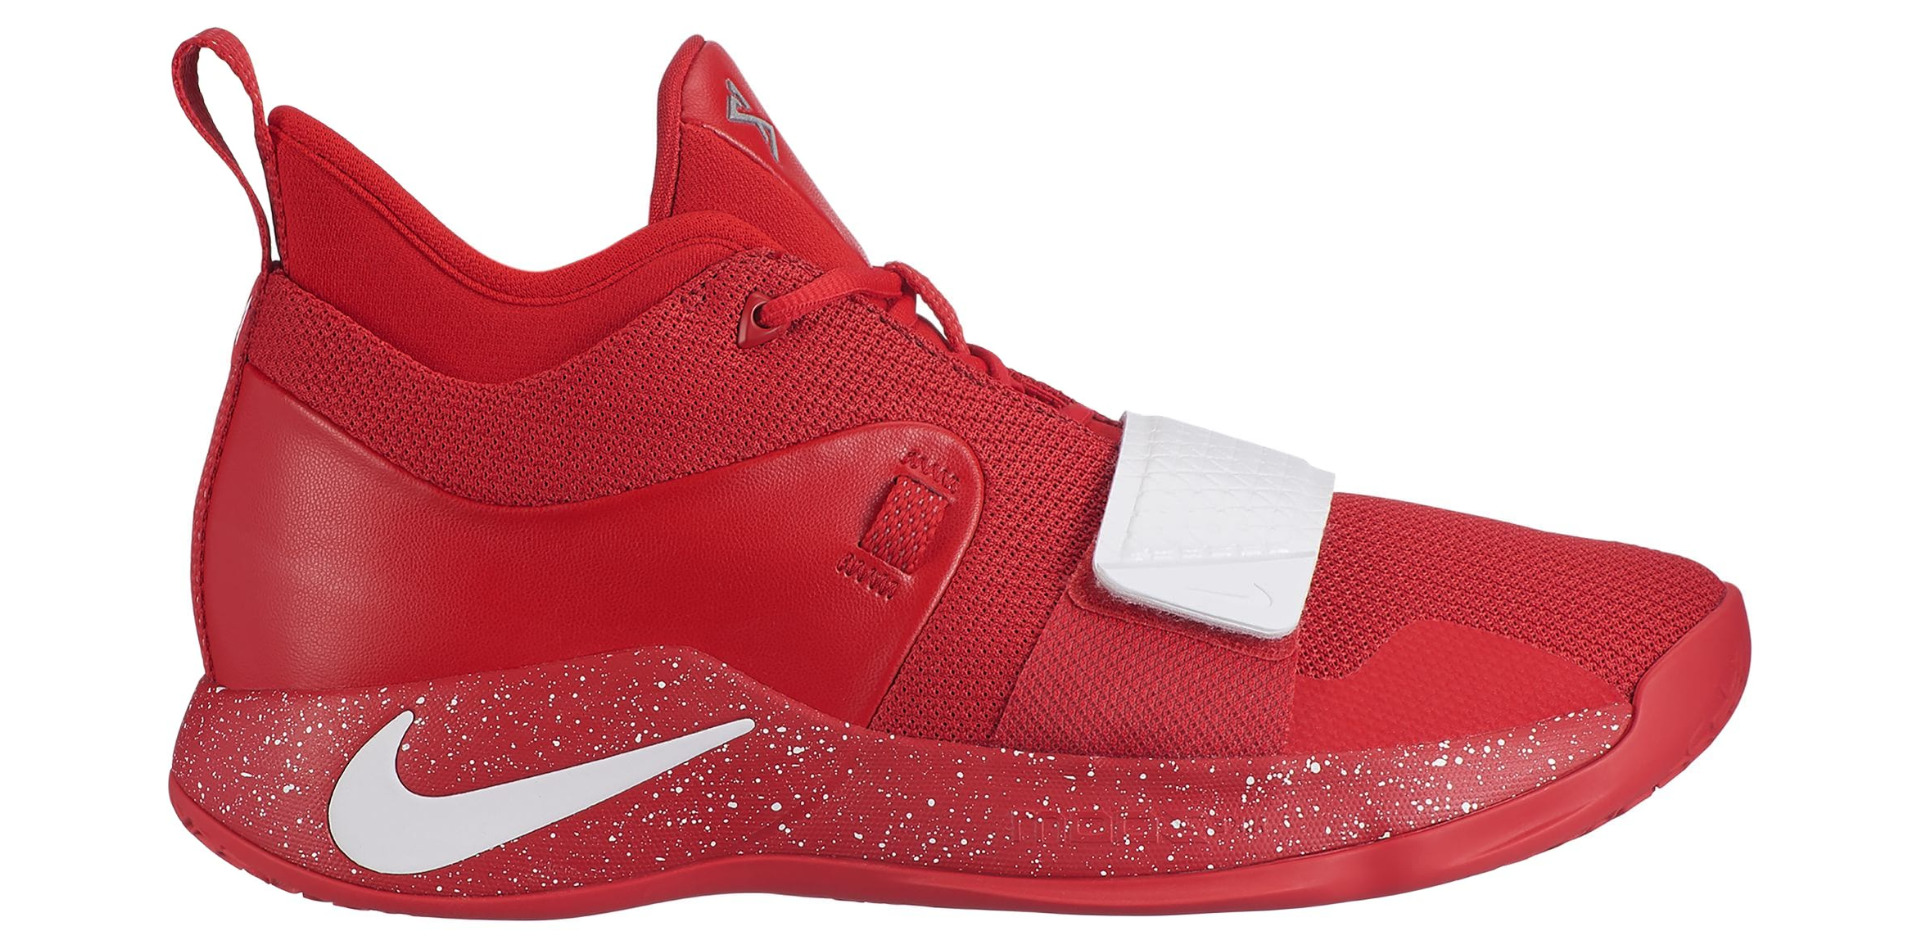 This Nike PG 2.5 'University Red' is an